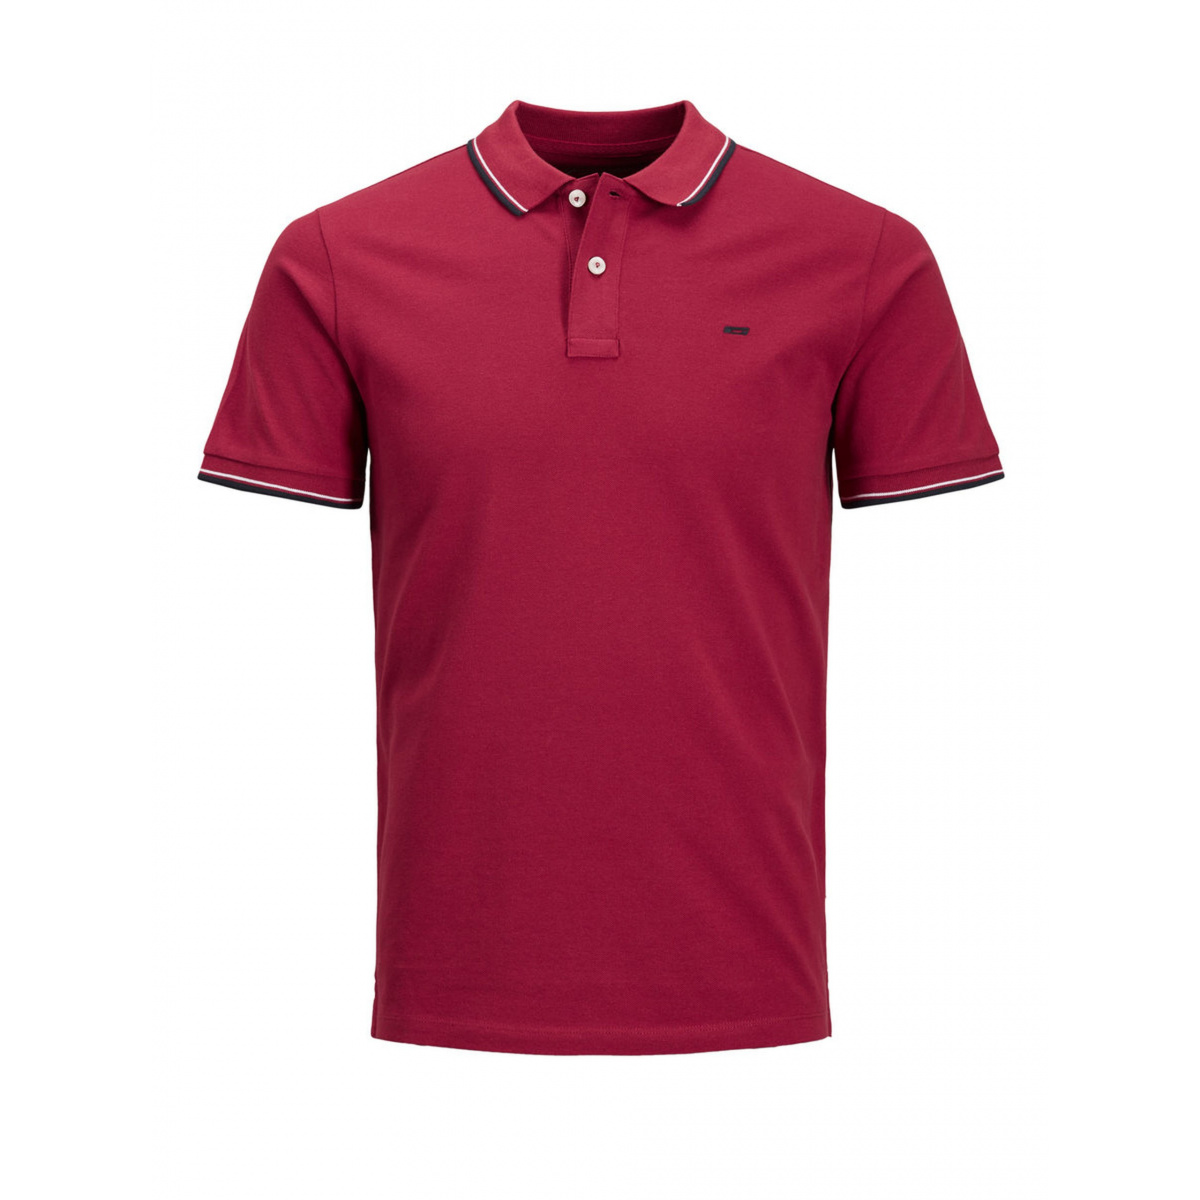 Homme Courtes Jones Manches Rouge Jackamp; Polo bgy7Yf6